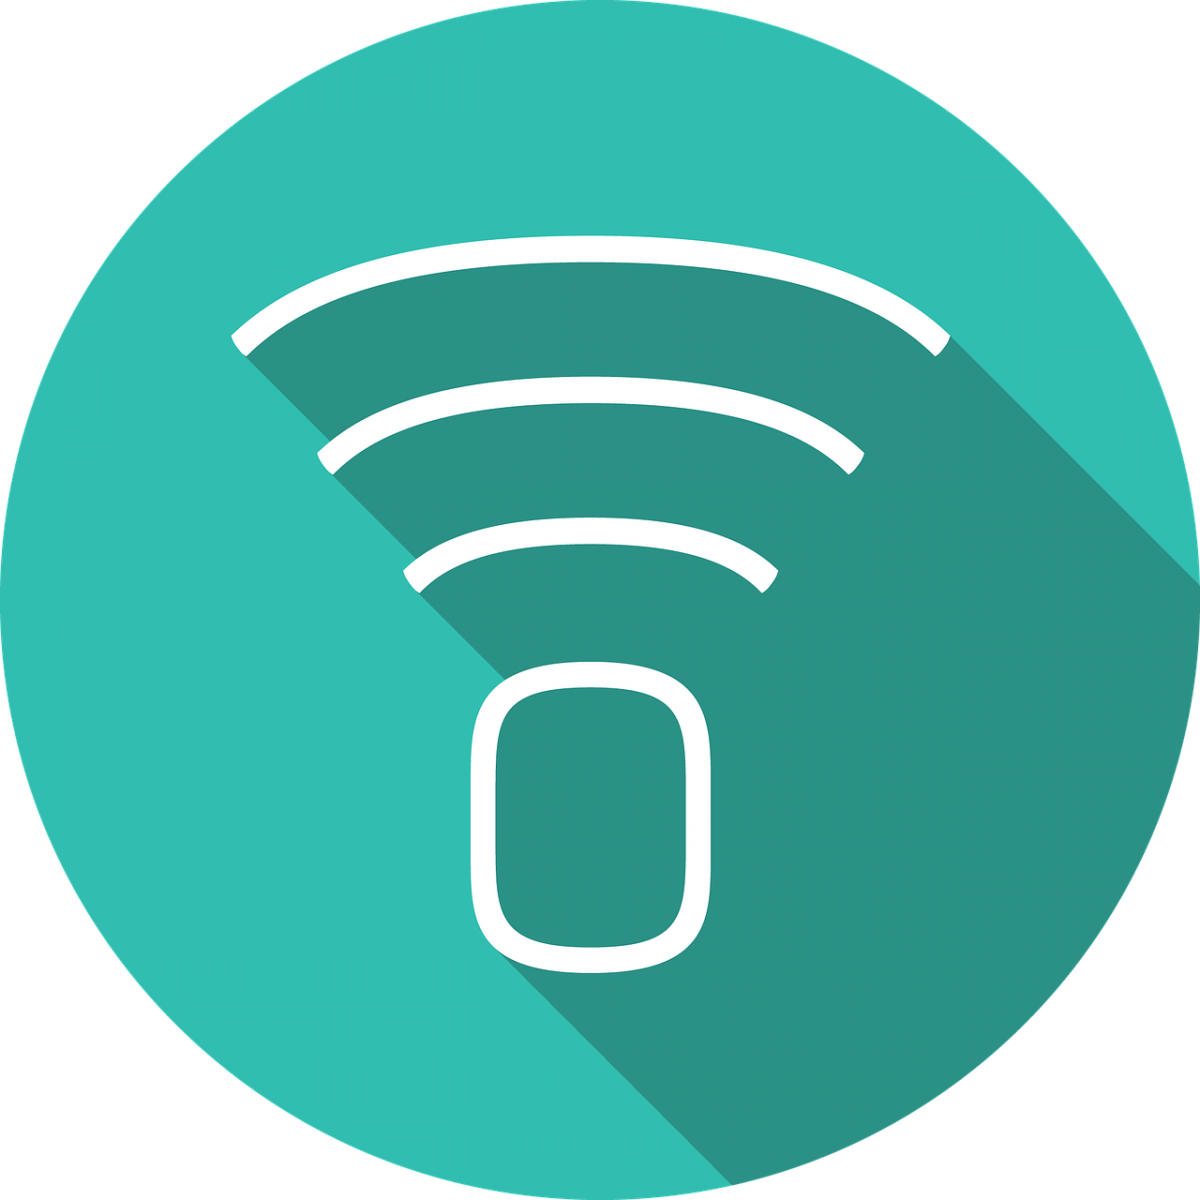 Tips for Protecting Your Privacy on Public Wi-Fi Networks